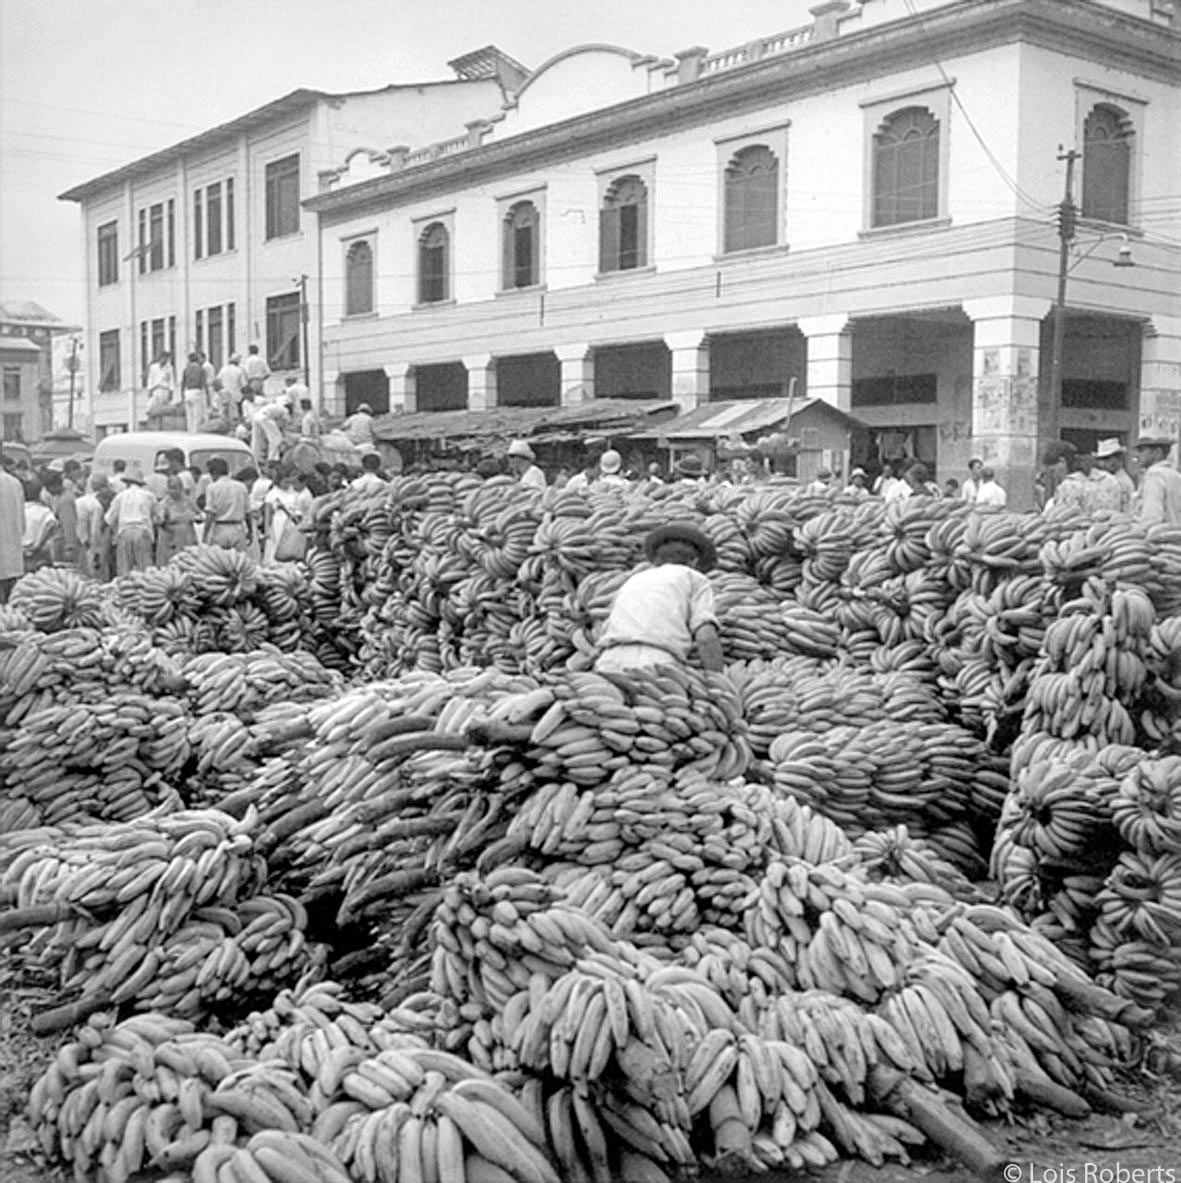 Gros Michel bananas on the Guayaquil waterfront in the 1950s. (Photo by Lois Roberts)